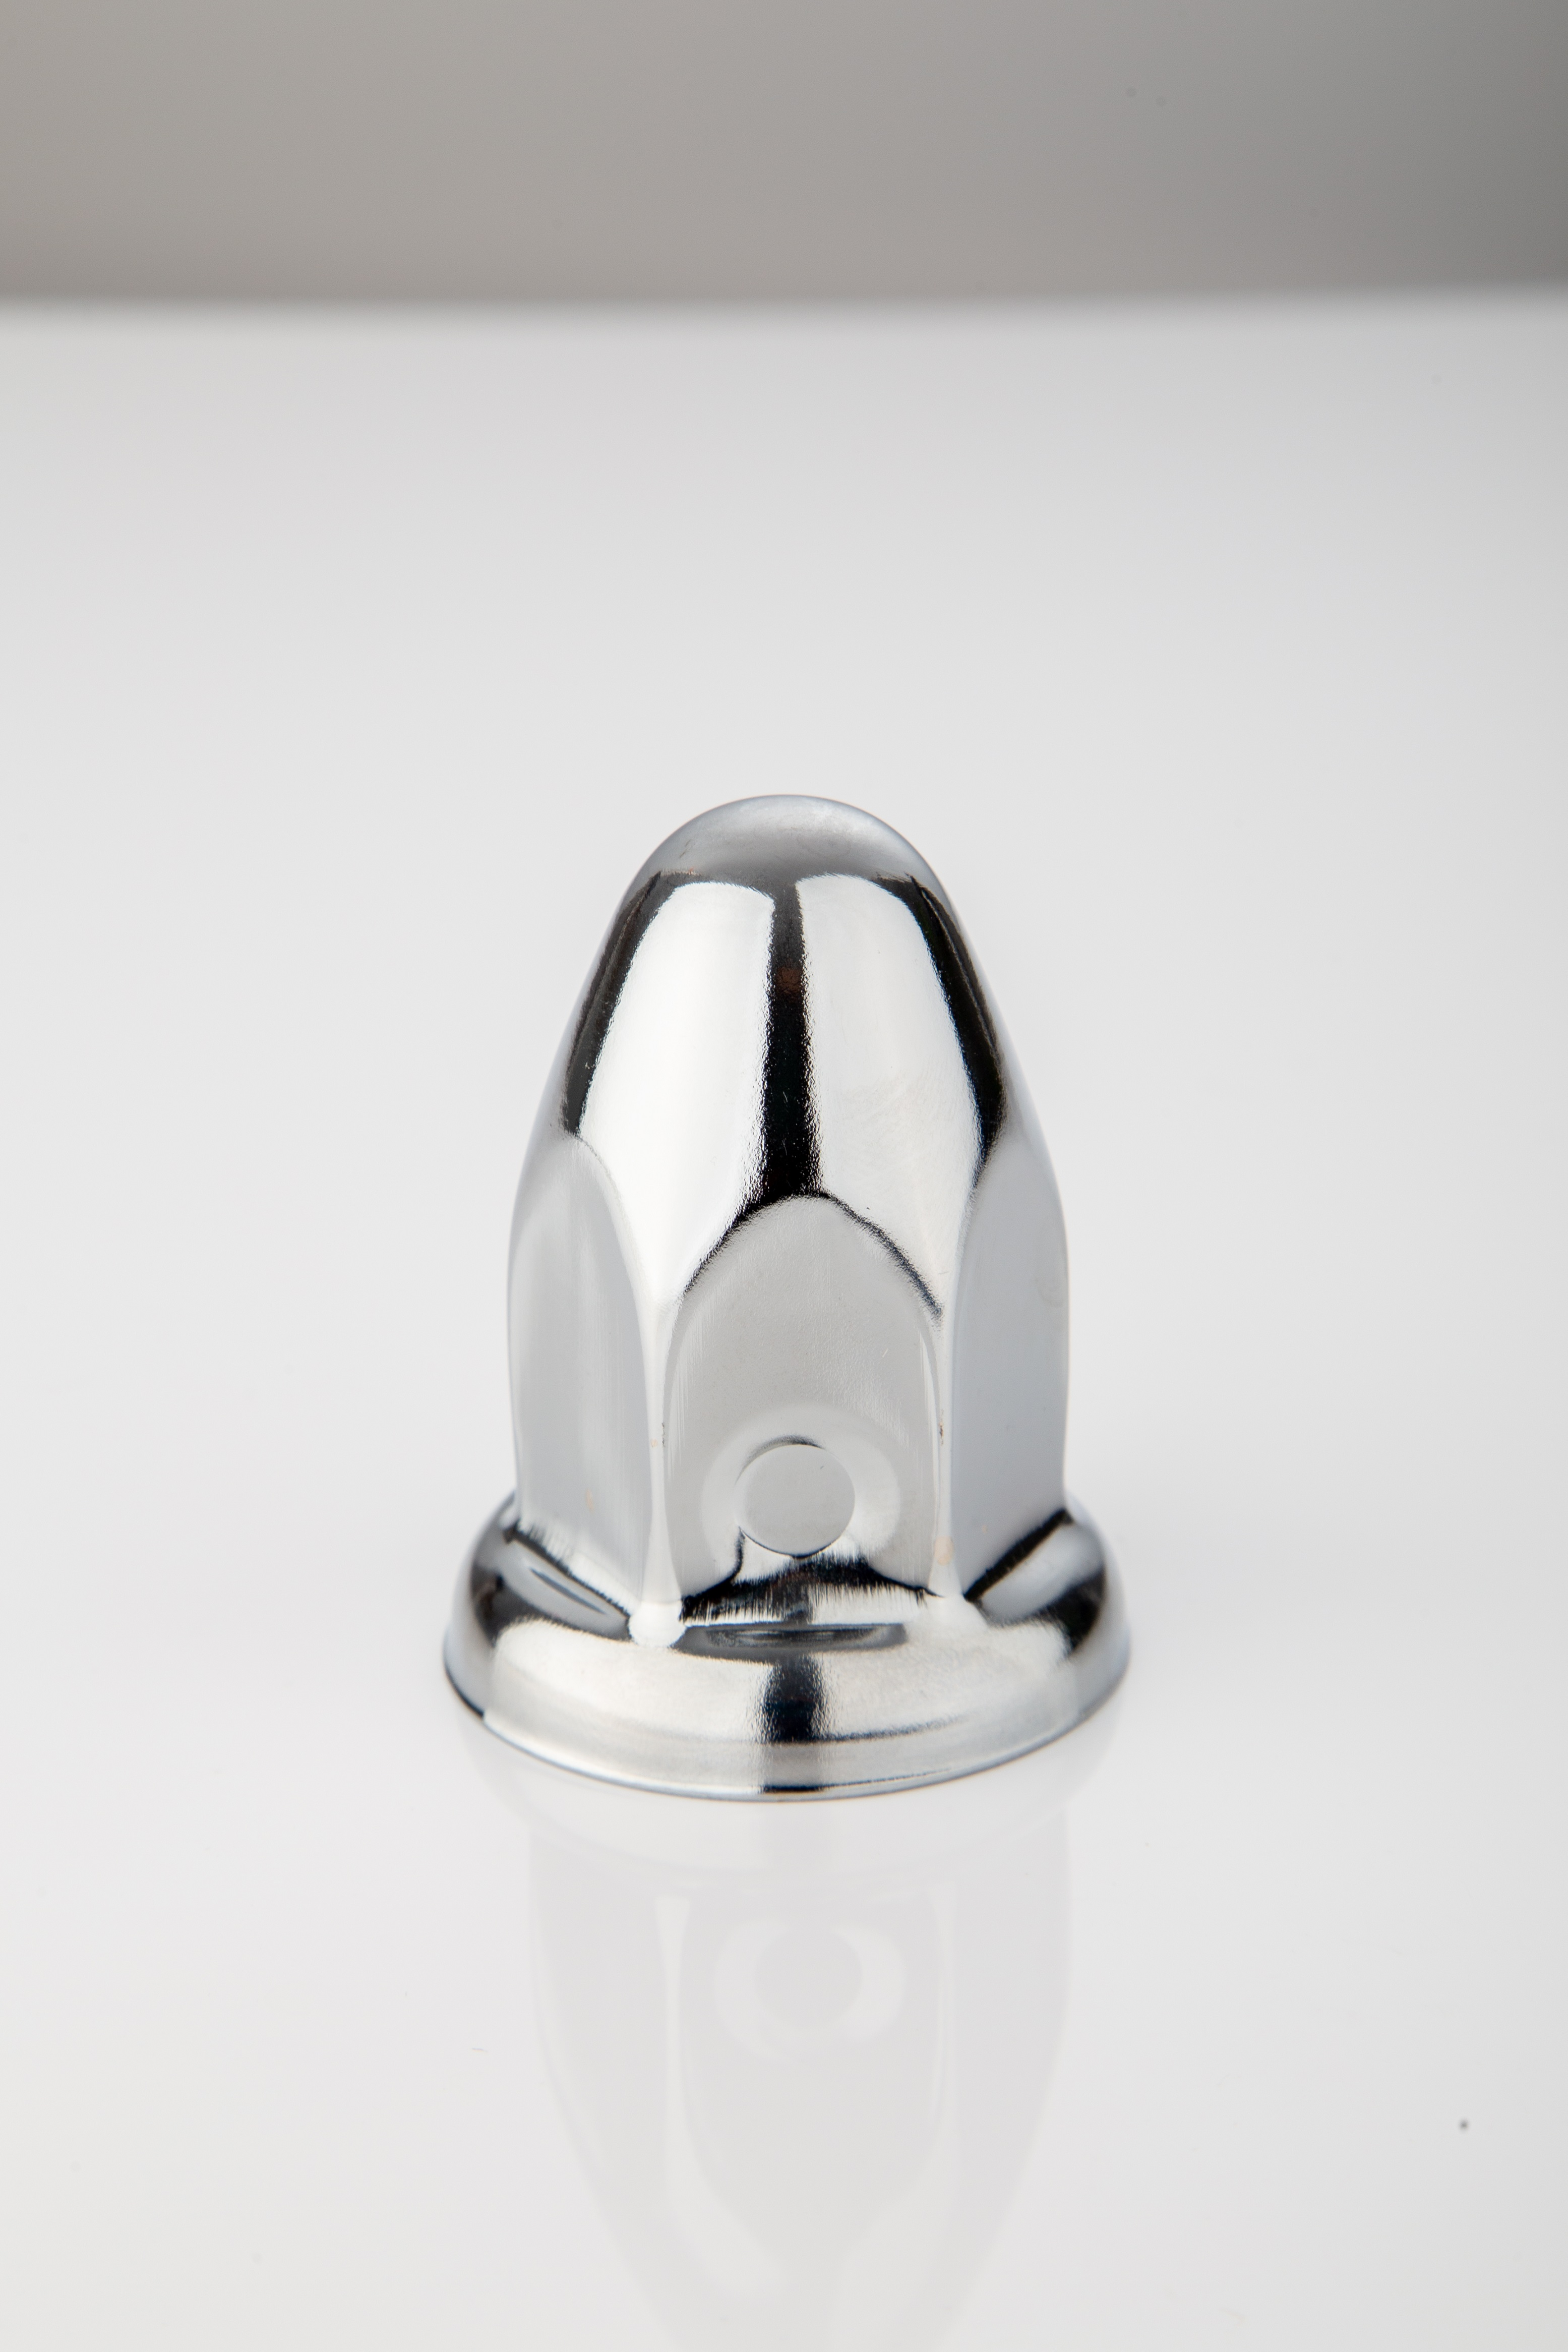 33 hex size 64mm height heavy duty truck wheel steel chrome lug nut cover